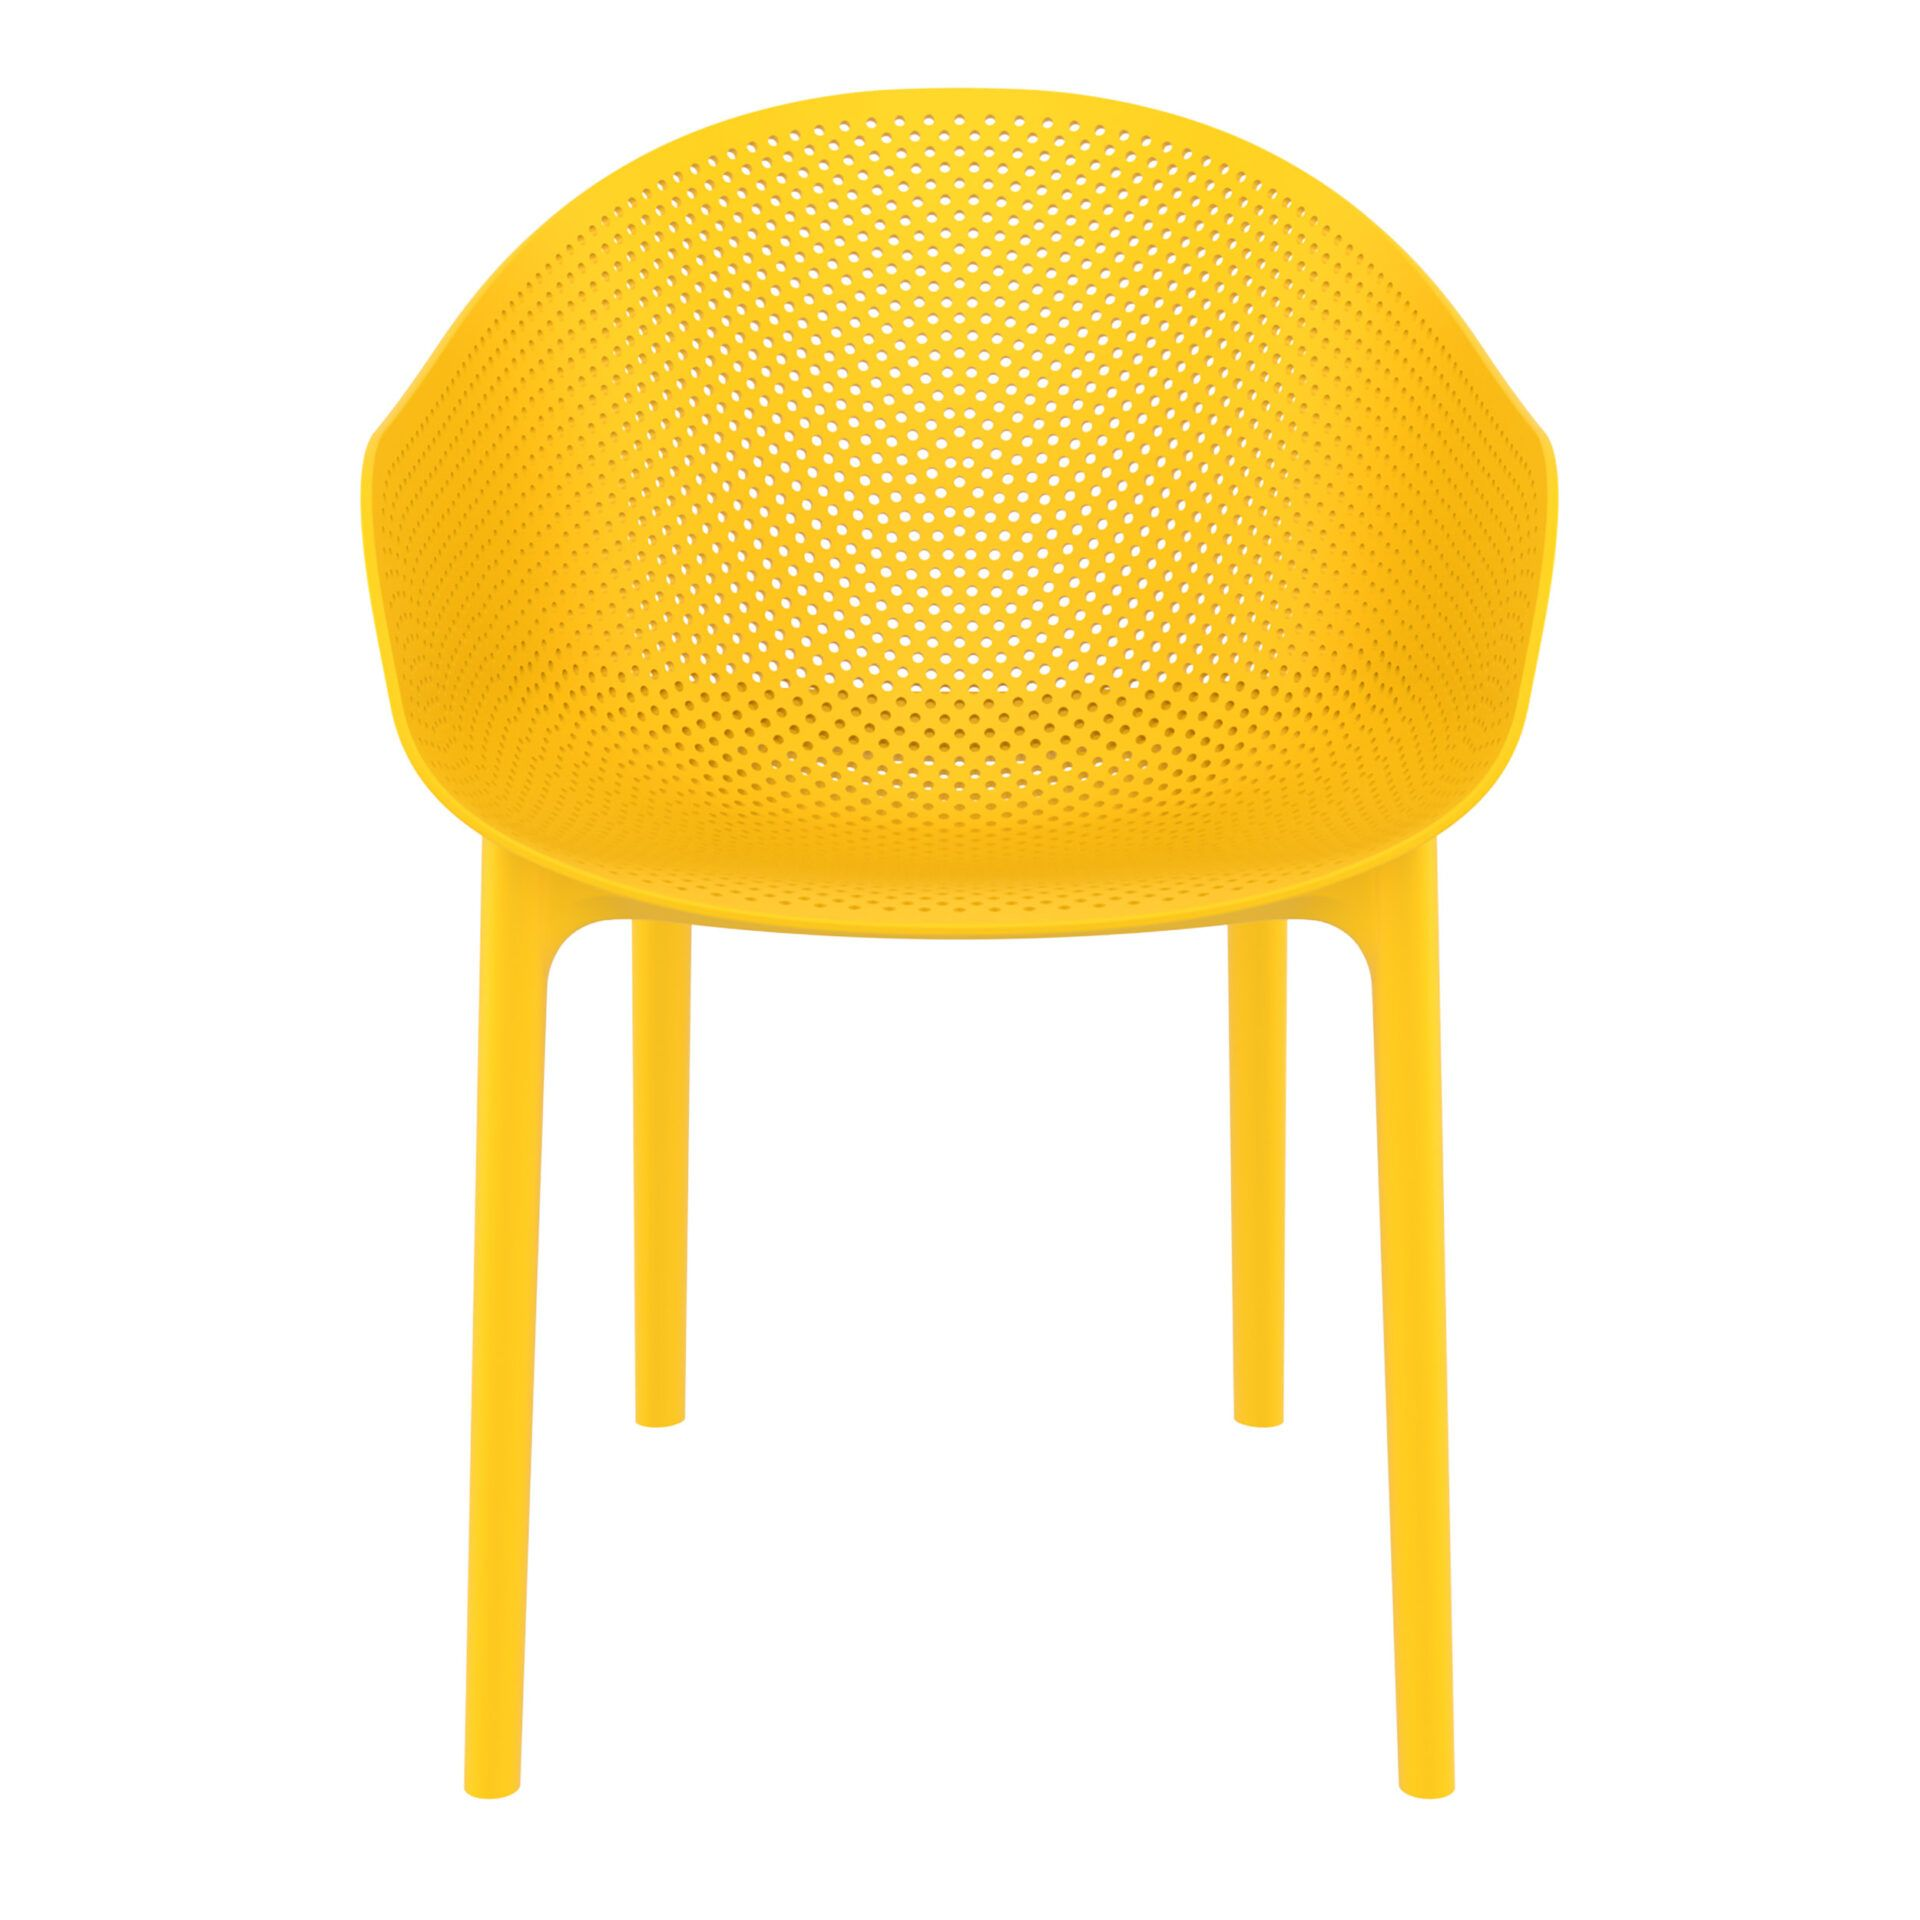 outdoor seating polypropylene sky chair yellow front